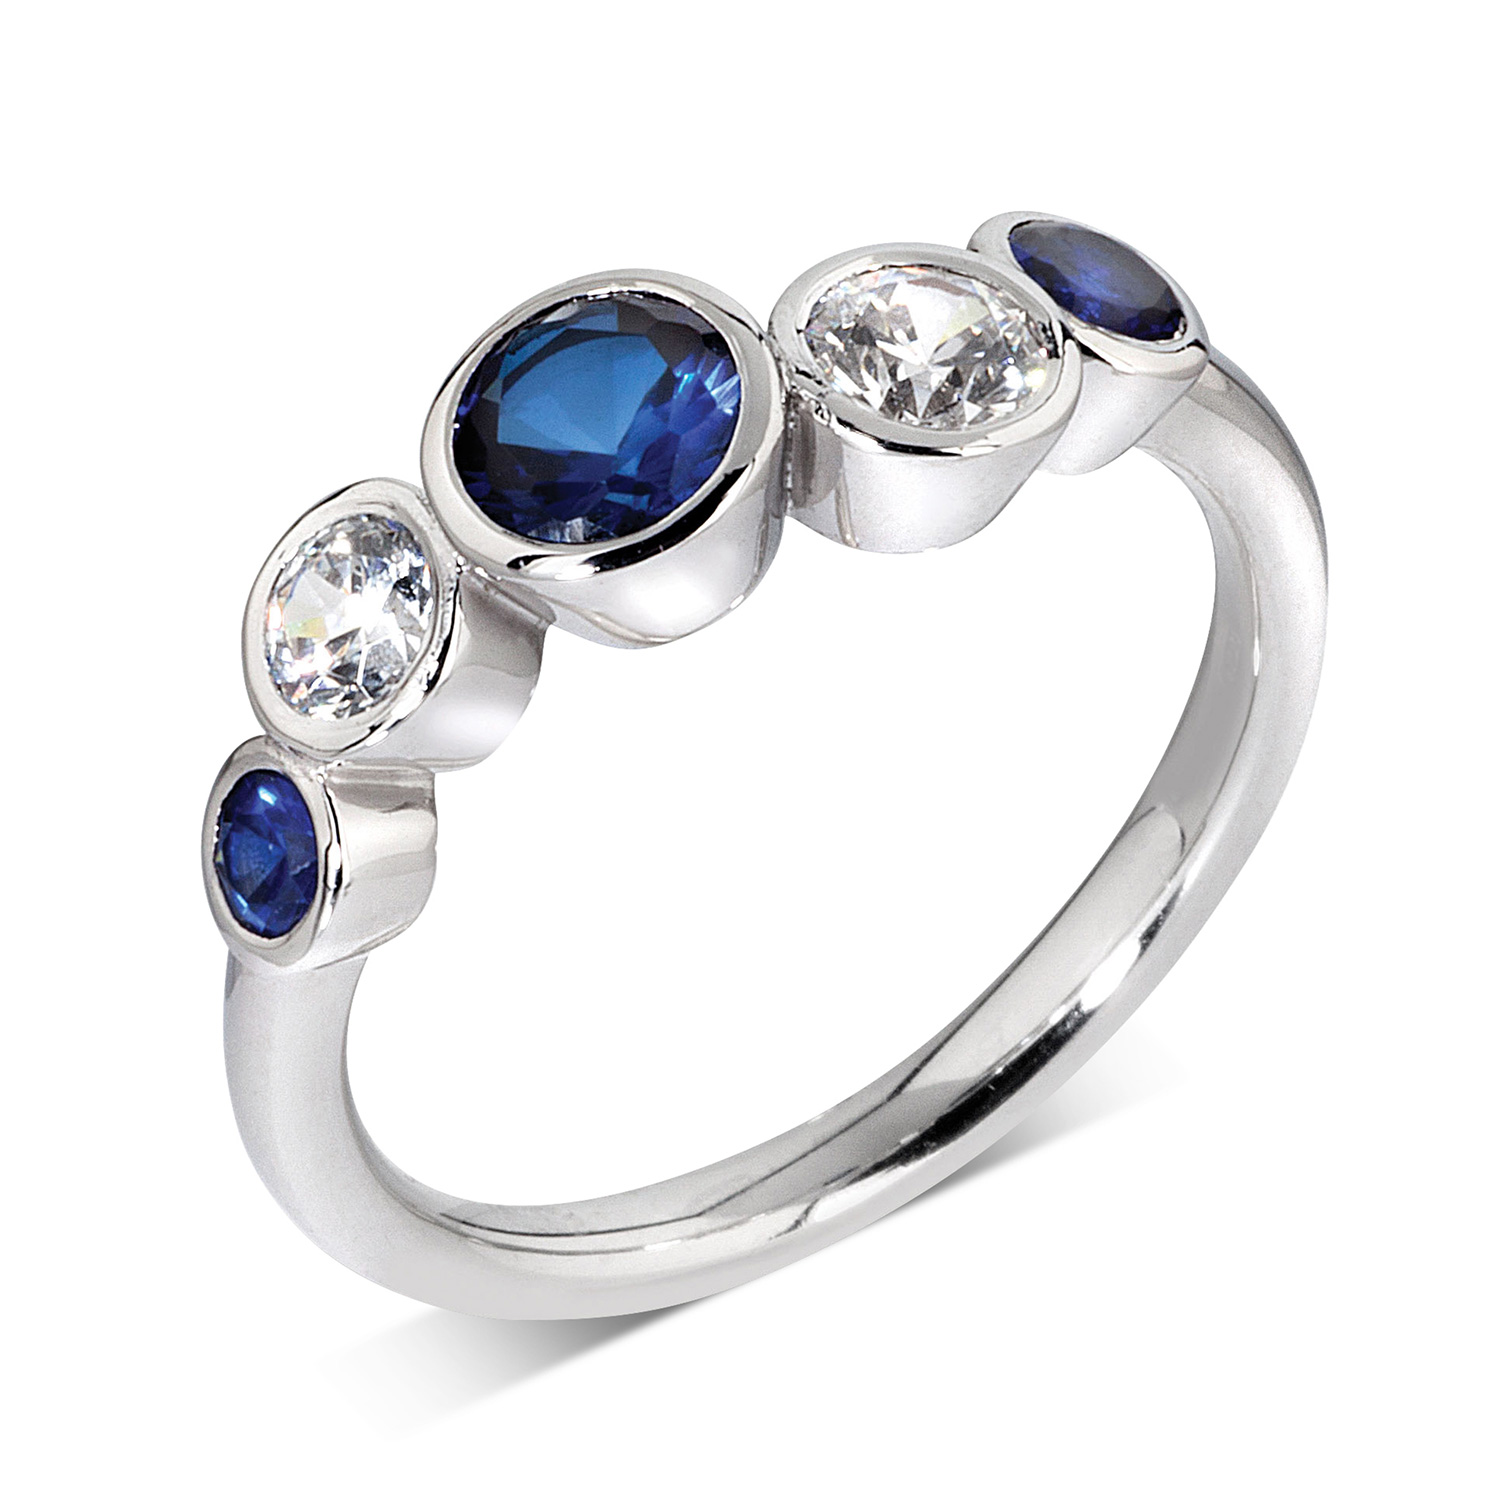 DIAMOND AND SAPPHIRE RUB-OVER RING